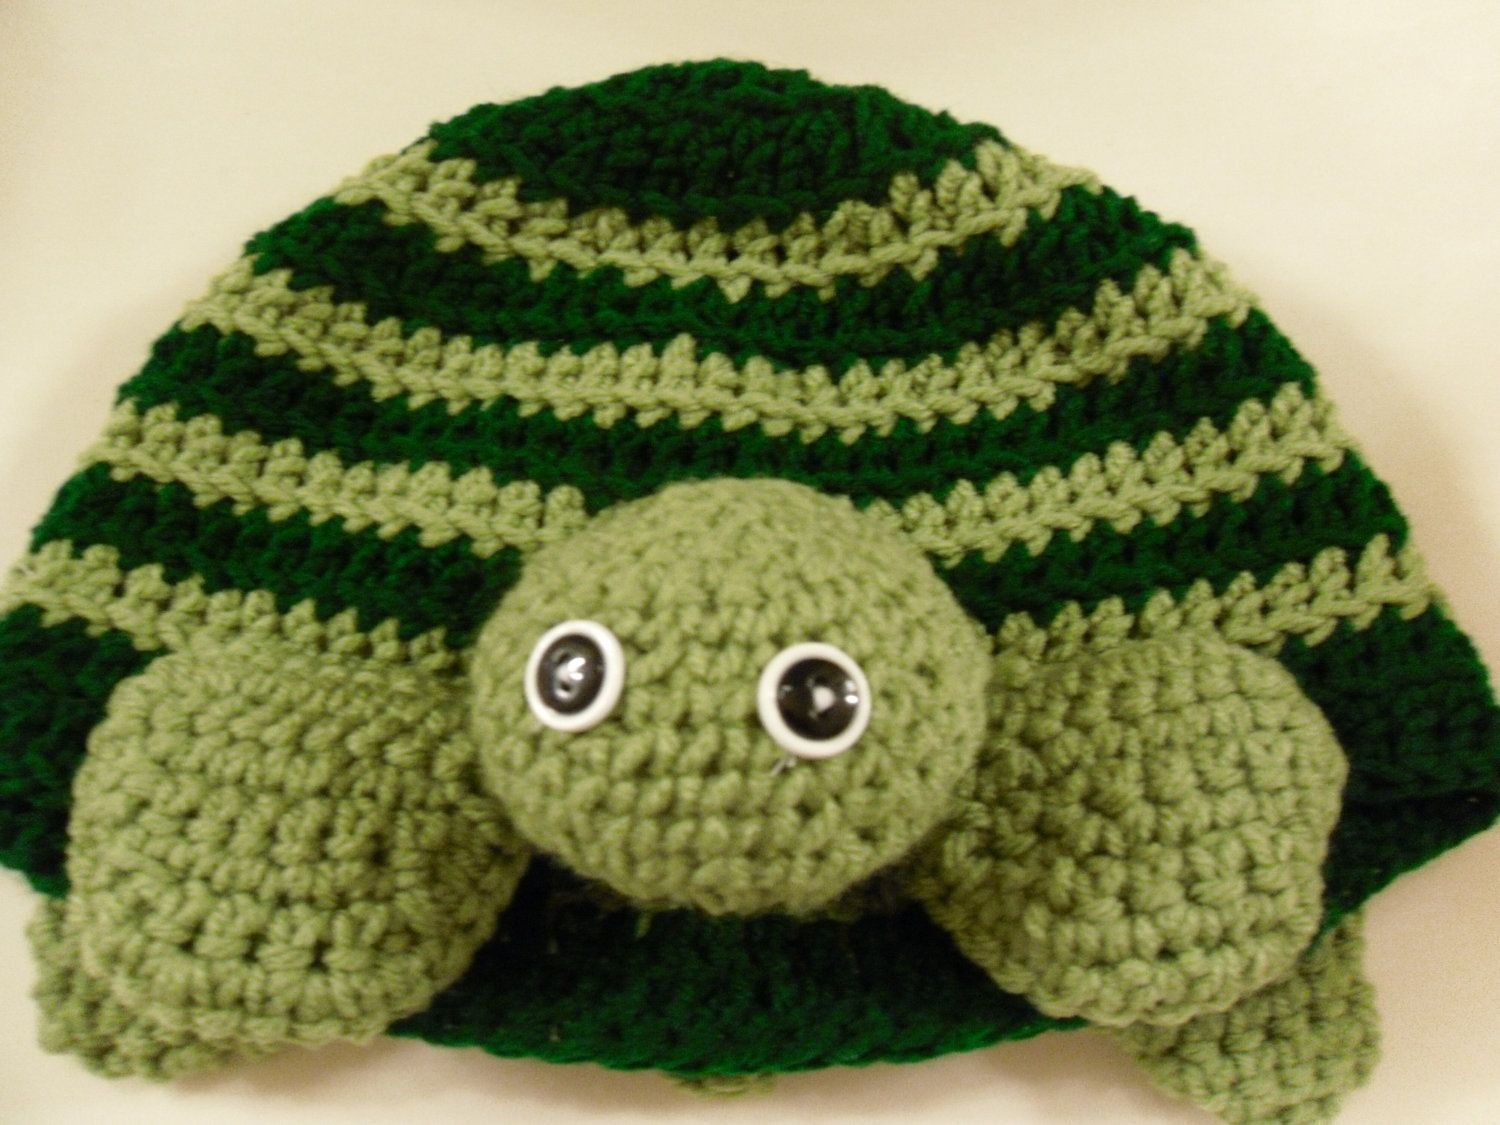 Enchanting Turtle Hat Crochet Pattern Ornament - Easy Scarf Knitting ...